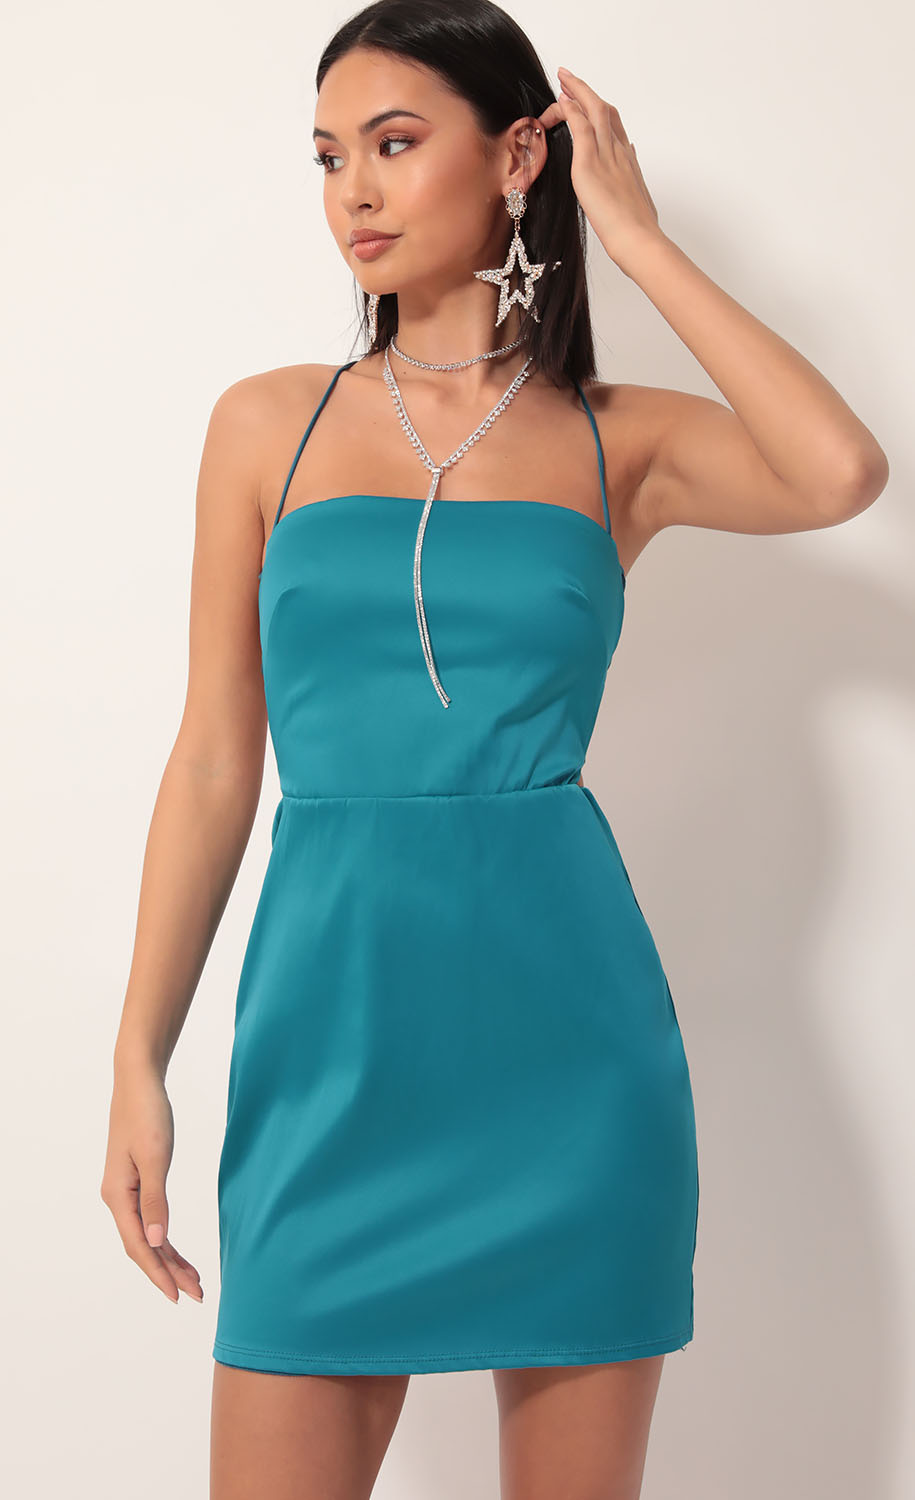 Lulu Satin Lace-up Dress in Teal